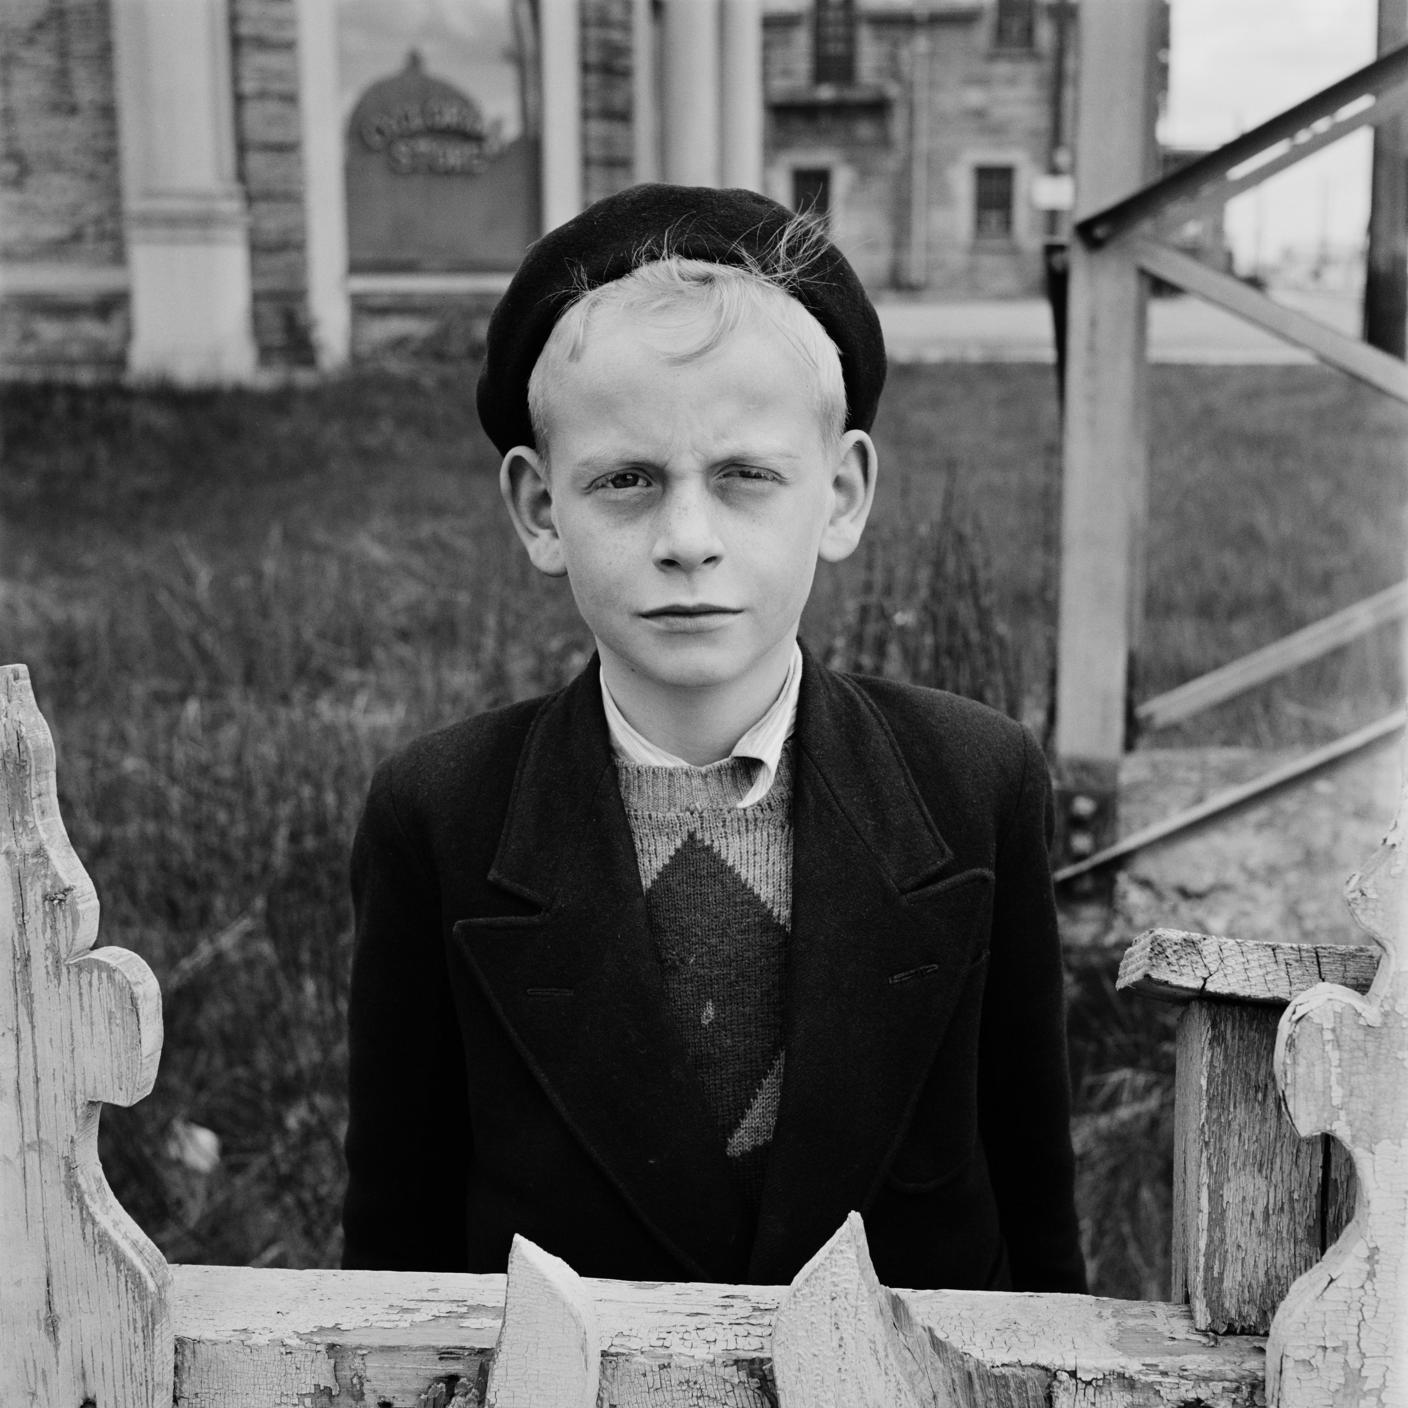 ©Vivian Maier/Maloof Collection, Courtesy Howard Greenberg Gallery, New York.